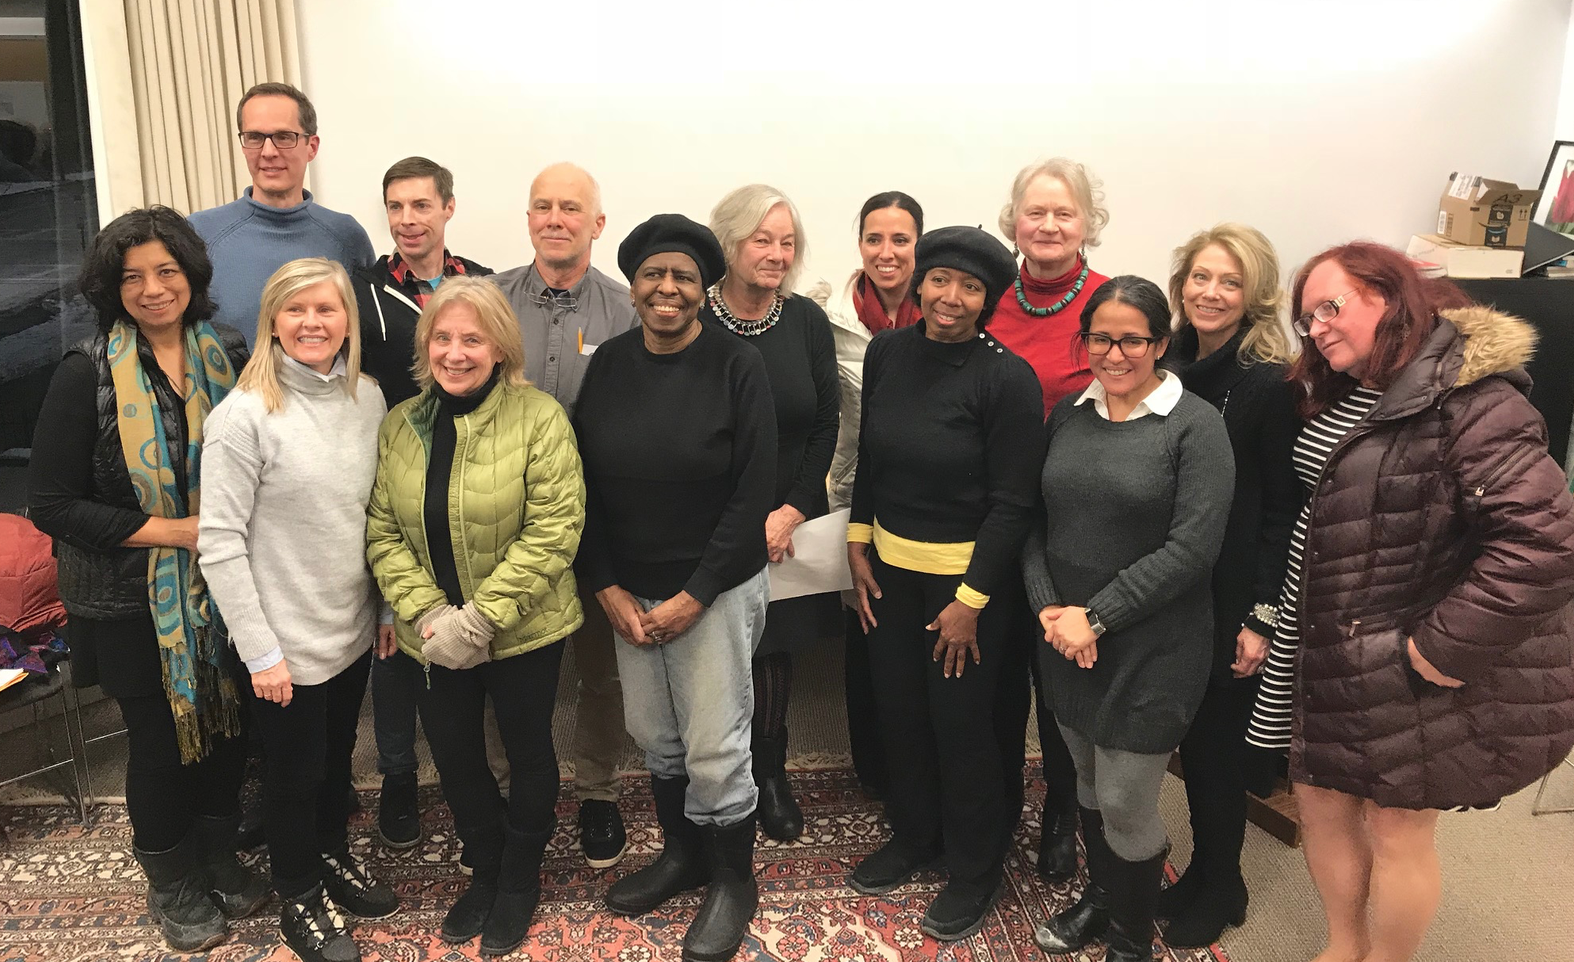 From left to right: Licia Sky, Don Haber, Maura Harrington, Michael Fox, Liane Crawford, Ed Hostetter, Jackie McRath, Marleen Nienhuis, State Sen. Sonia Chang-Diaz, Kim Clark, Barbara Sommerfeld, Michelle Laboy, Marilyn Davillier, Chris Fagg. Taken at the 2018 Annual Meeting at the SE Library.